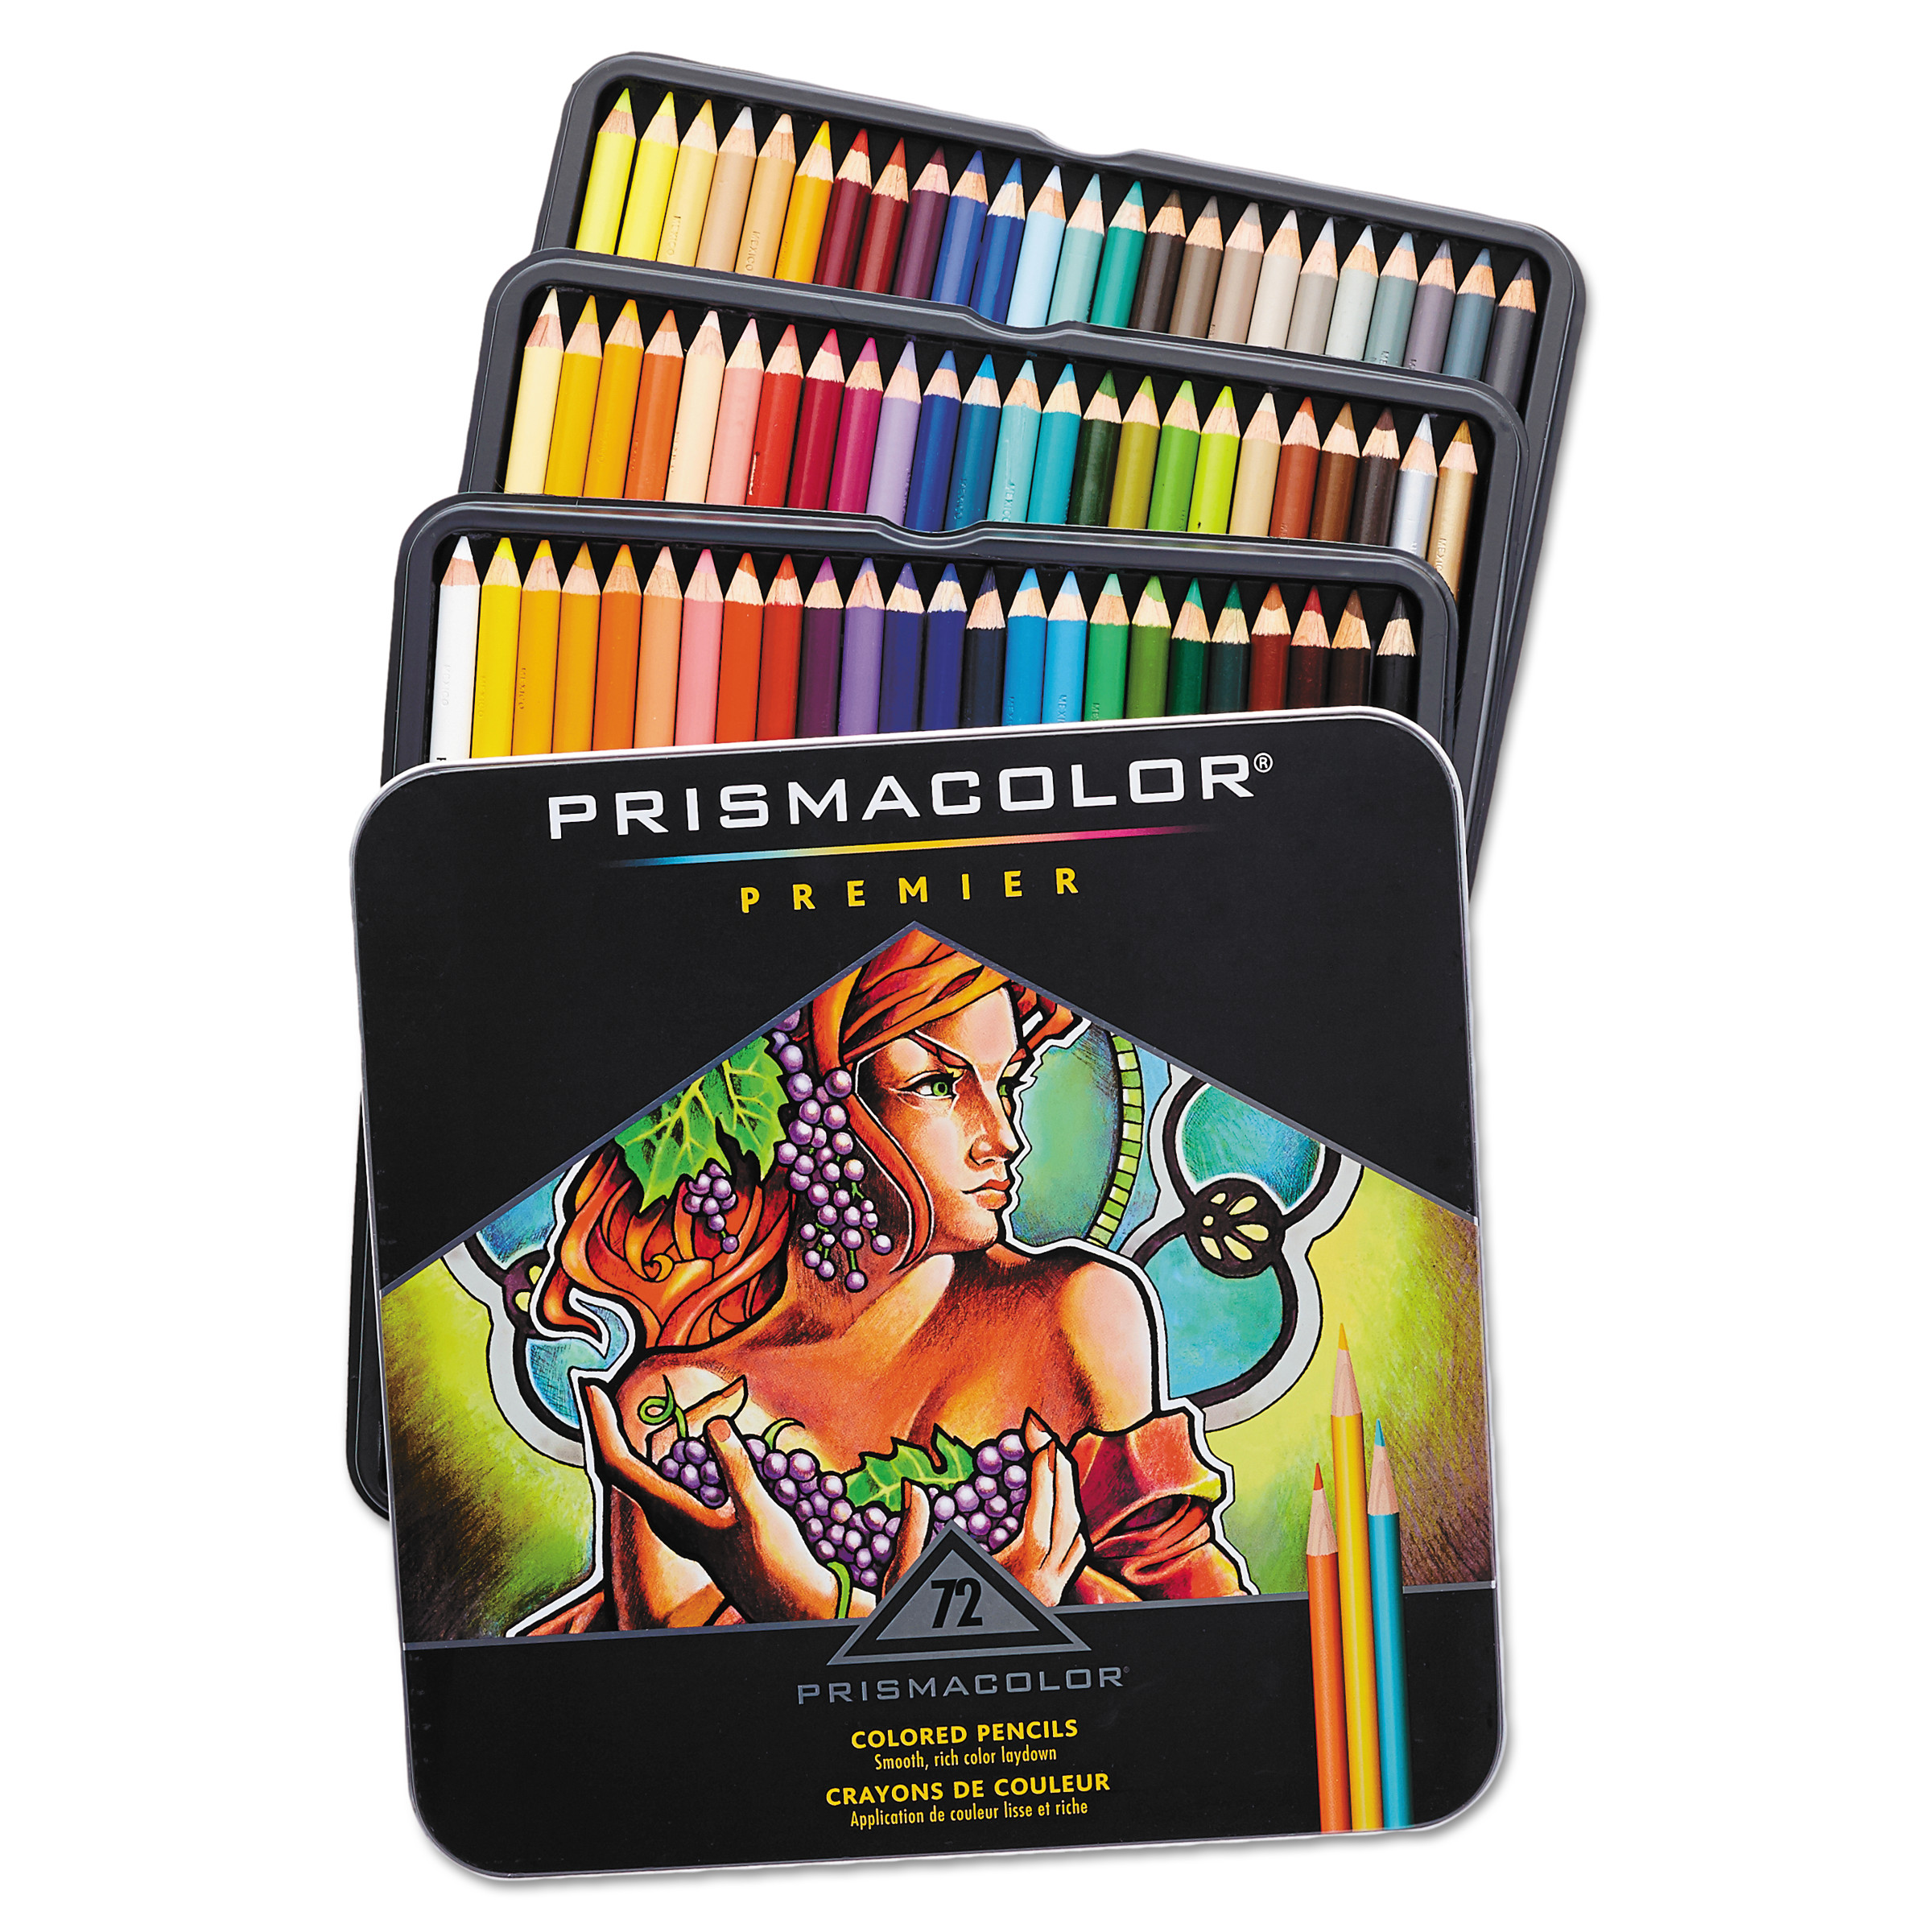 Prismacolor Colored Art Pencil Set 72 Pieces Walmart Com